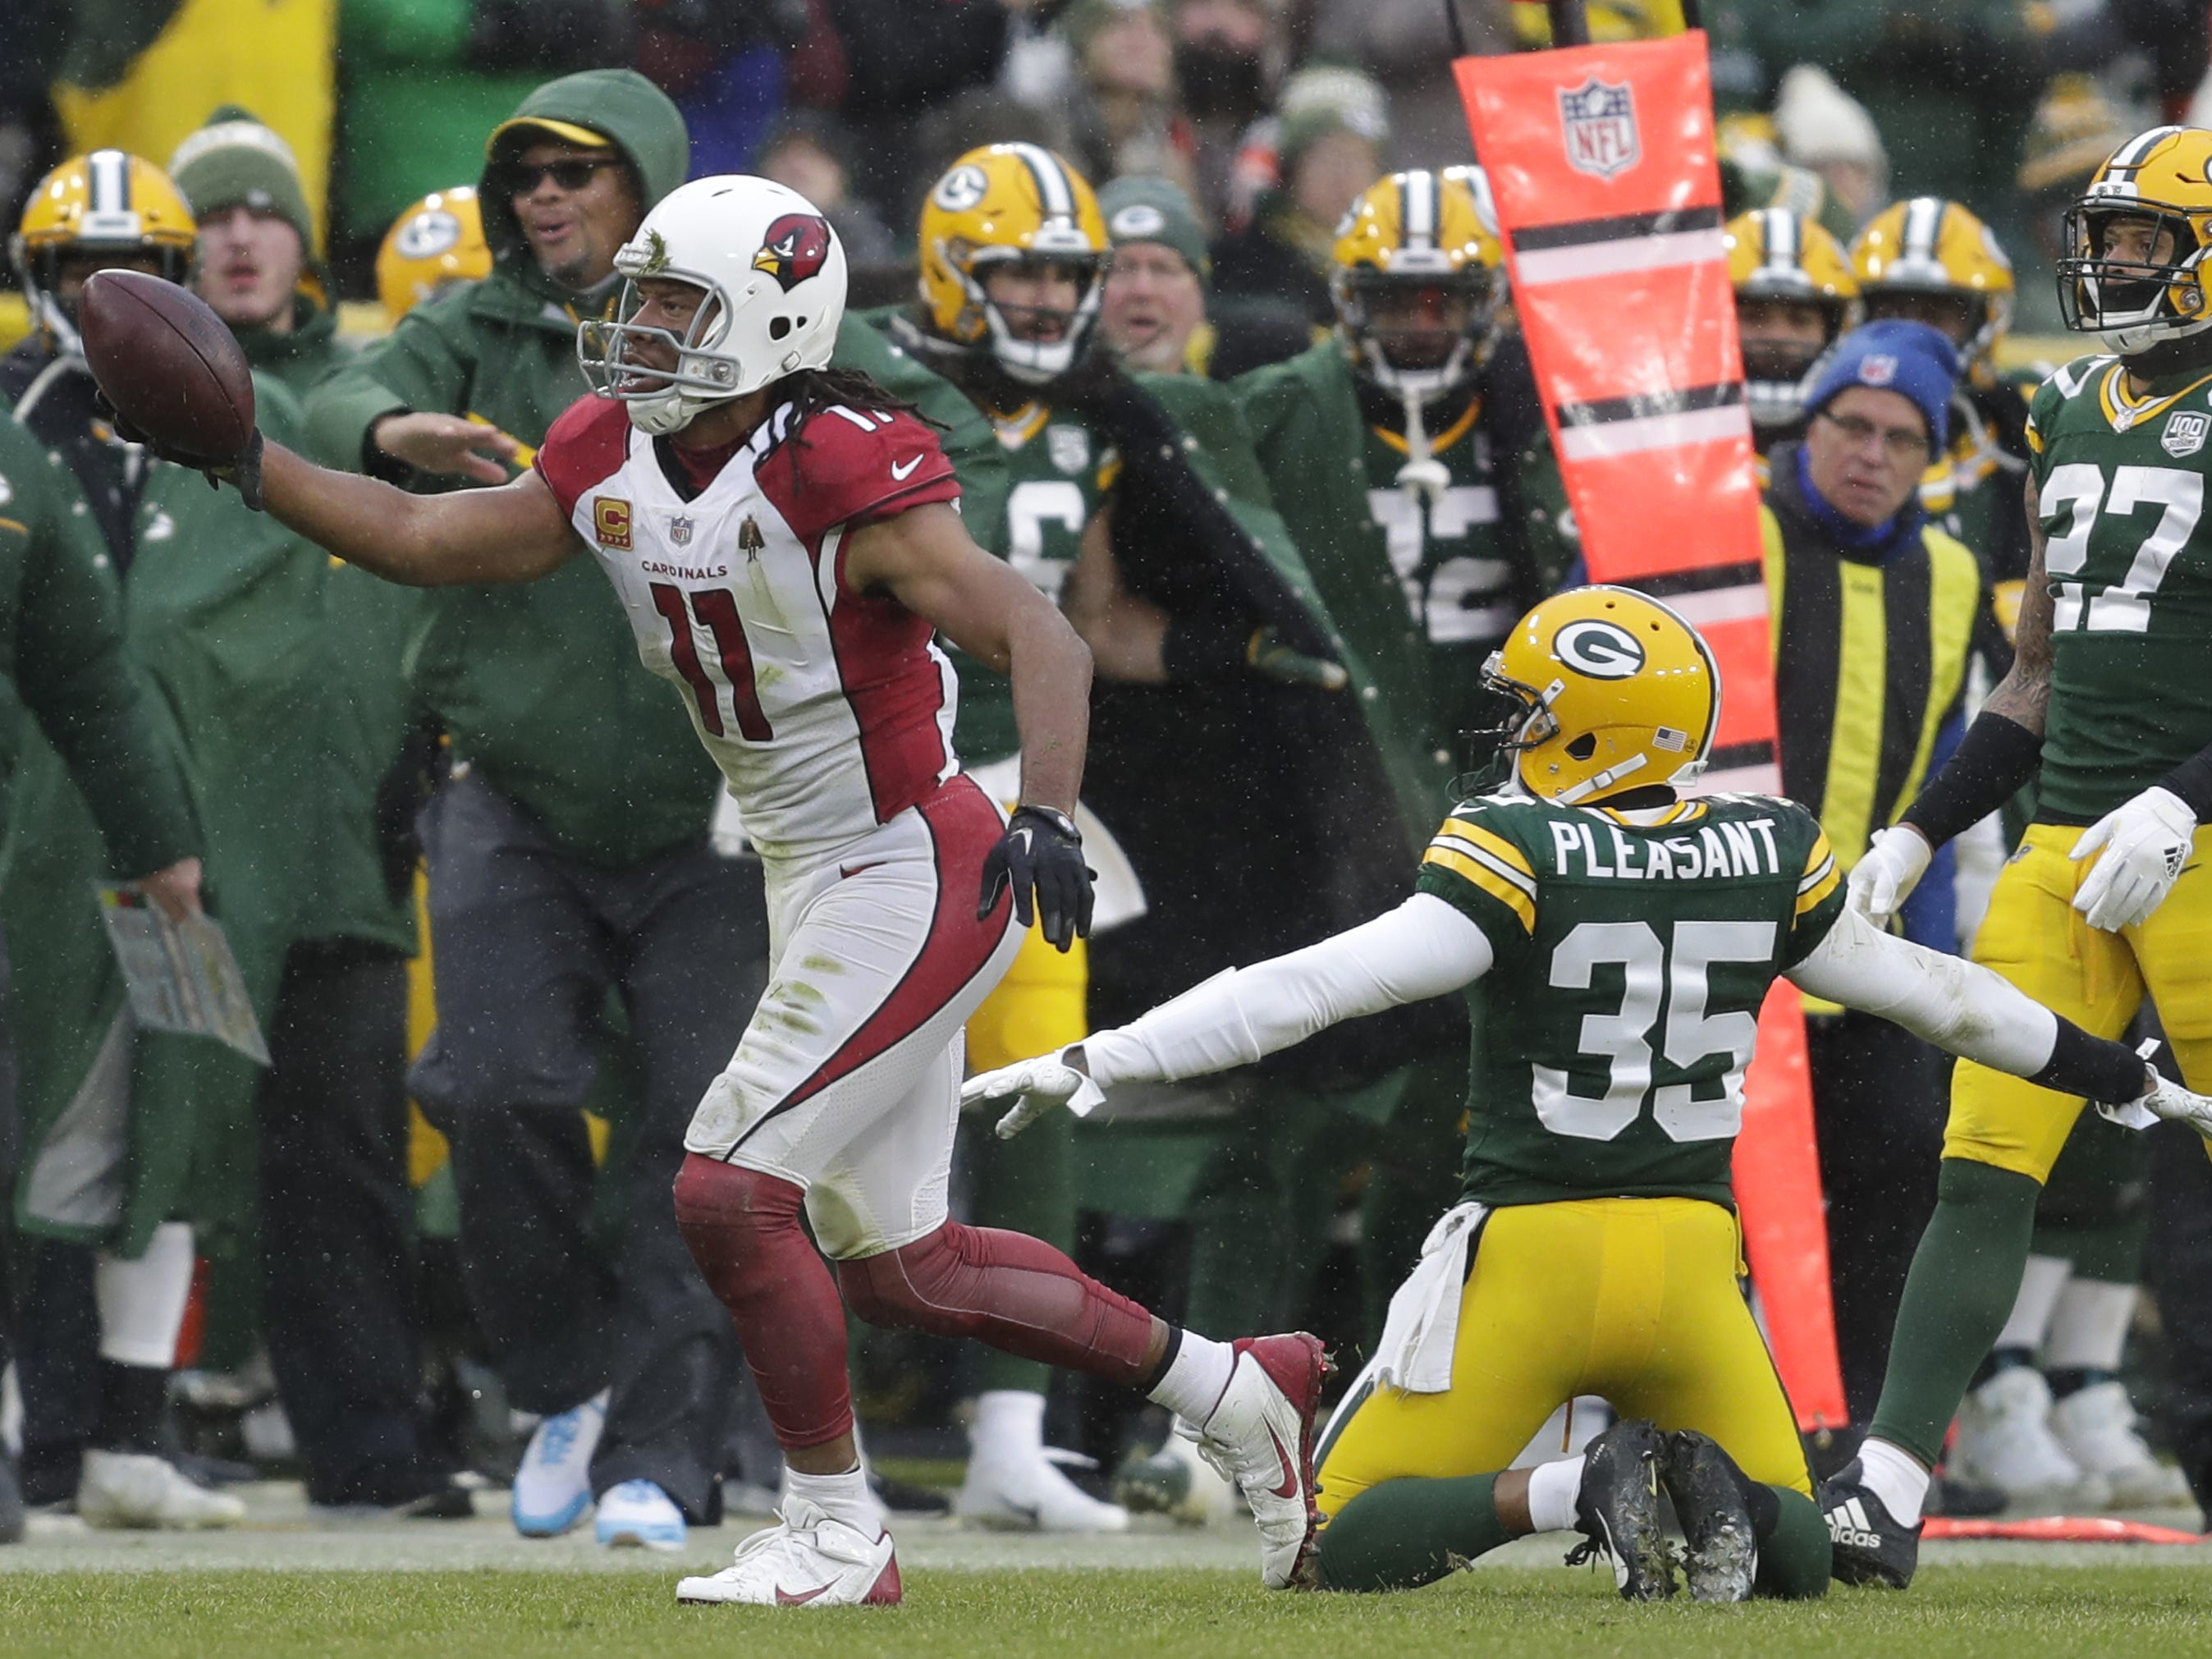 Arizona Cardinals wide receiver Larry Fitzgerald (11) celebrates a long receptiion in the fourth quarter against Green Bay Packers defensive back Eddie Pleasant (35) and cornerback Josh Jackson (37) Sunday, December 2, 2018, at Lambeau Field in Green Bay, Wis.  Dan Powers/USA TODAY NETWORK-Wisconsin